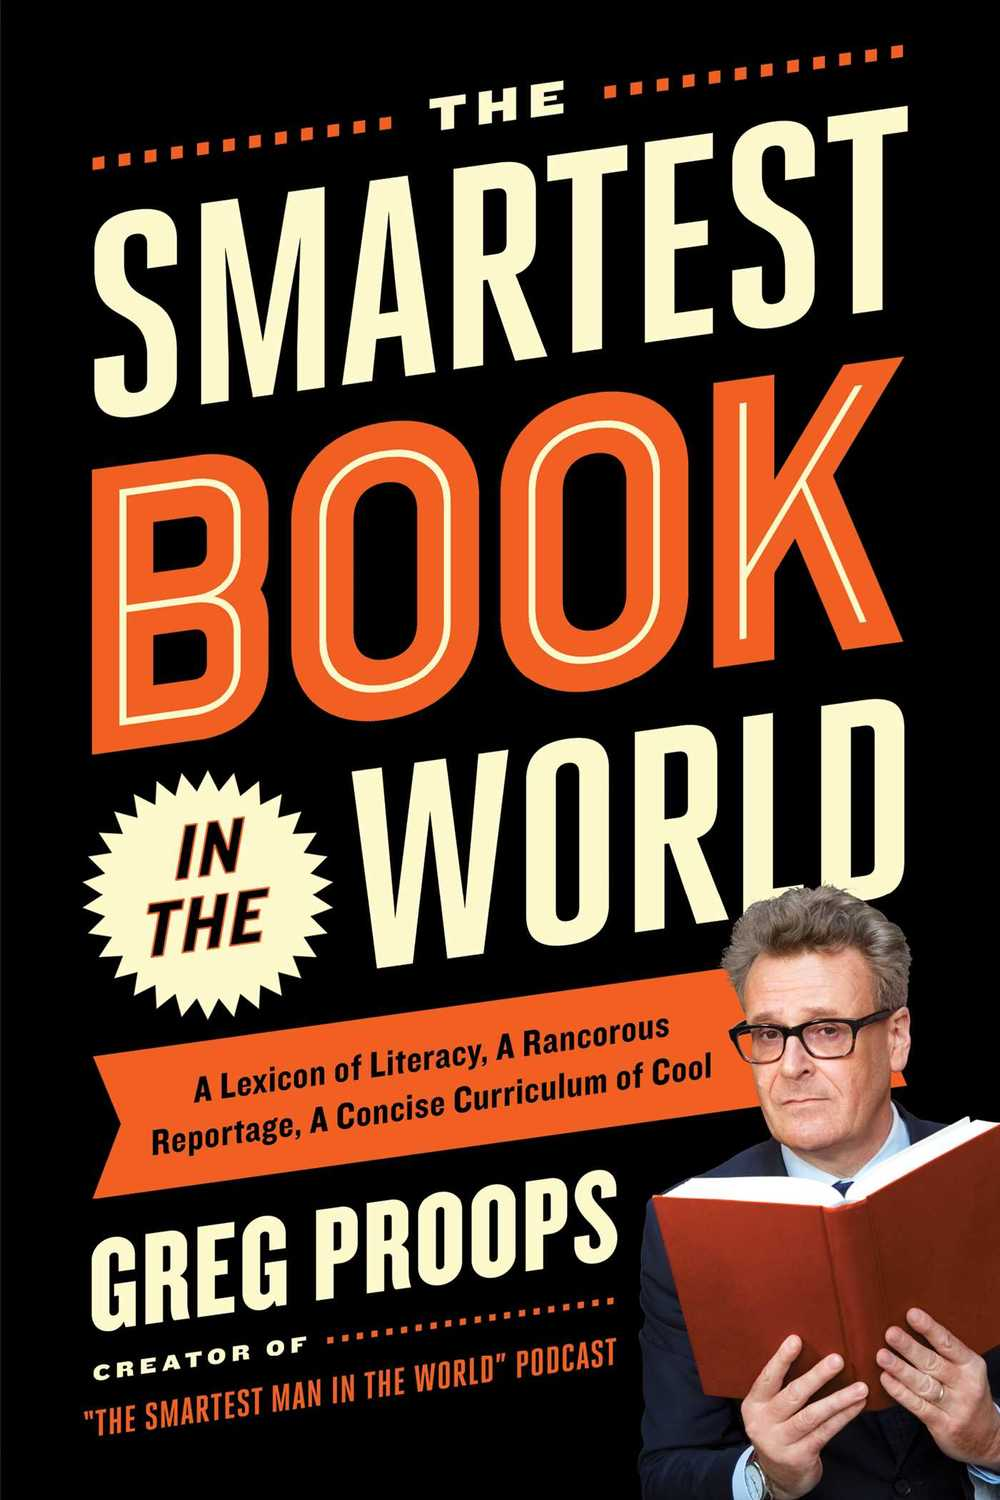 the-smartest-book-in-the-world-9781476747040_hr.jpg